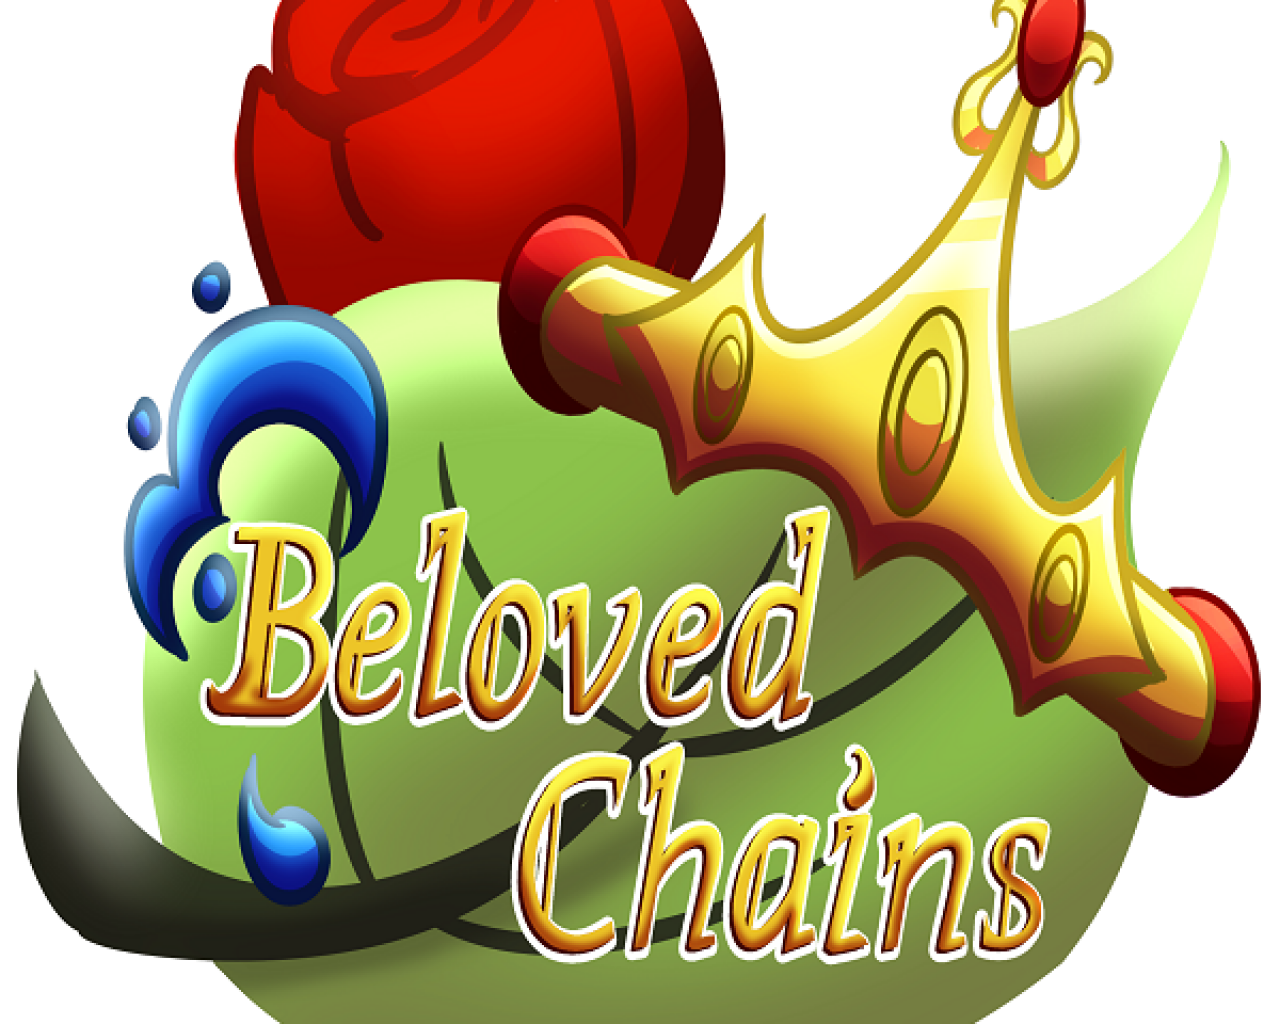 Poster Image for Beloved Chains